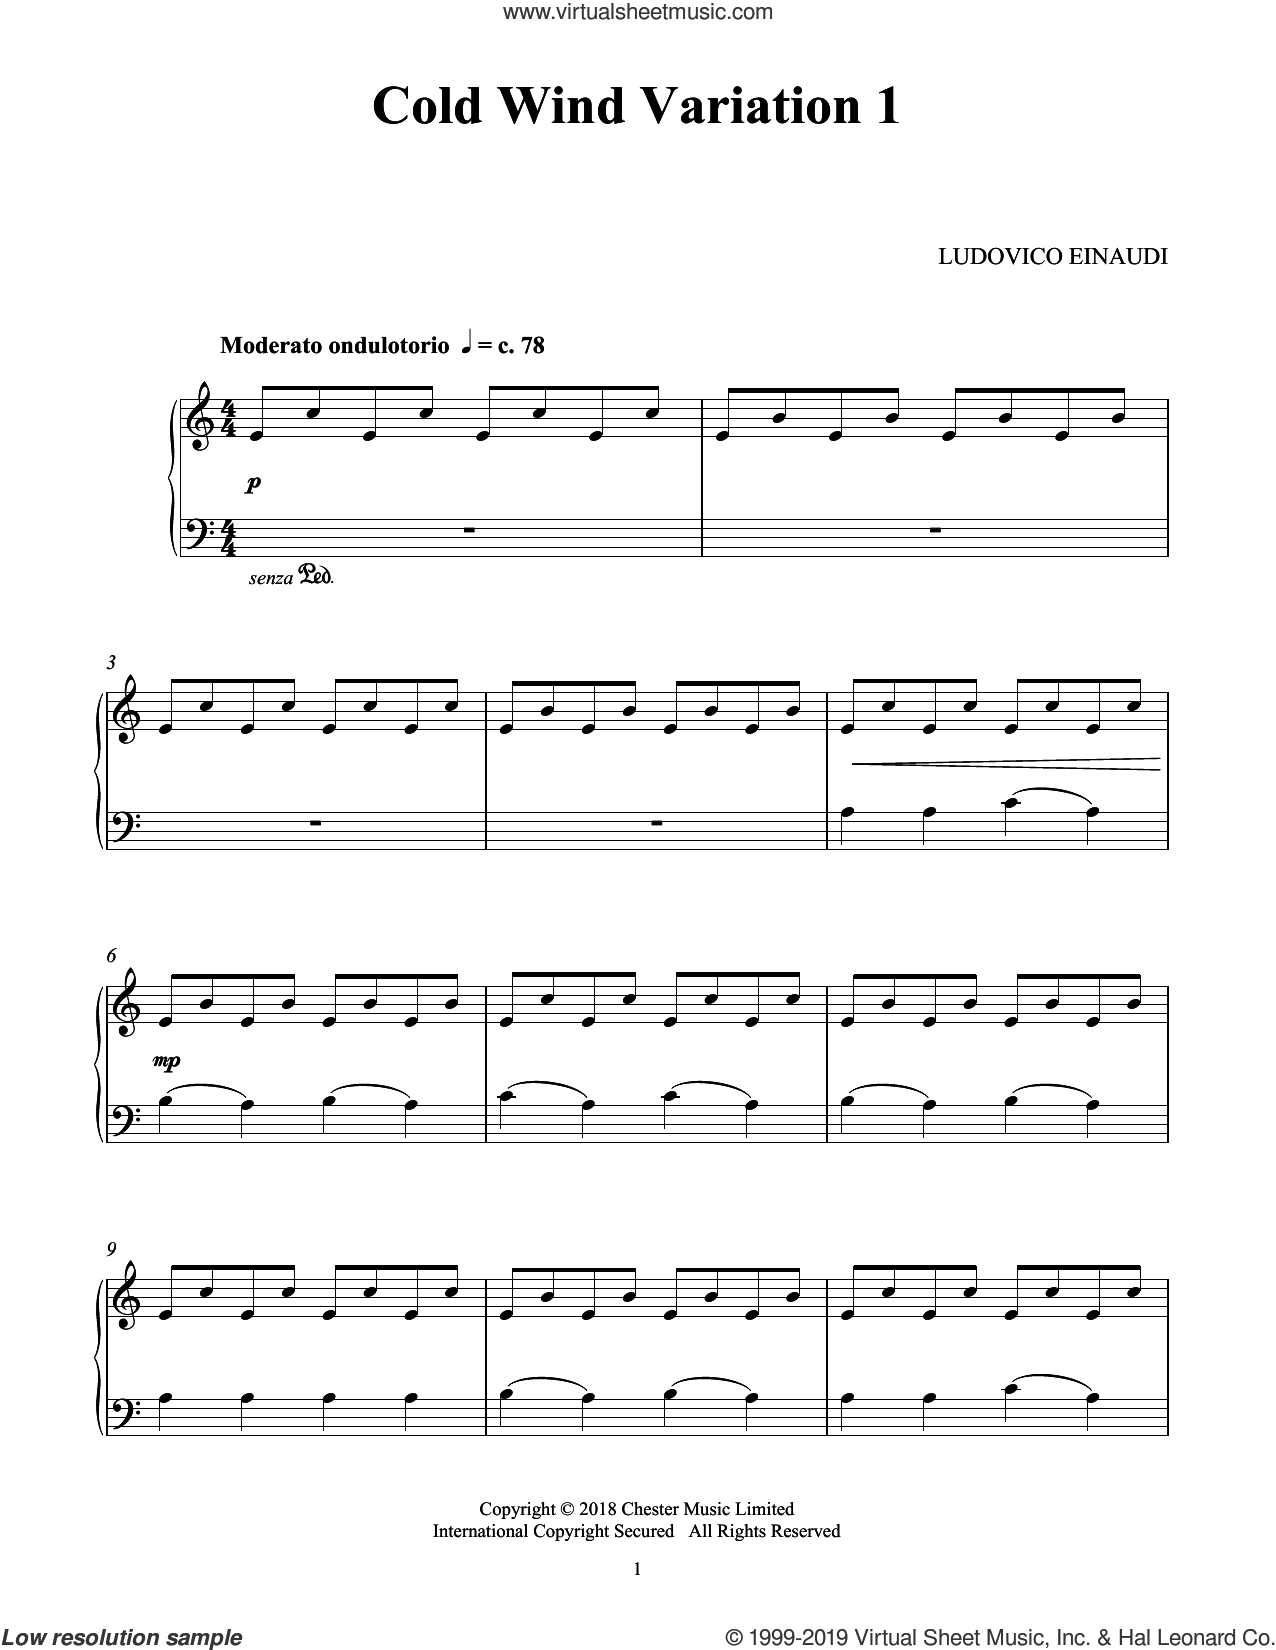 Cold Wind Var. 1 (from Seven Days Walking: Day 1) sheet music for piano solo by Ludovico Einaudi, classical score, intermediate skill level